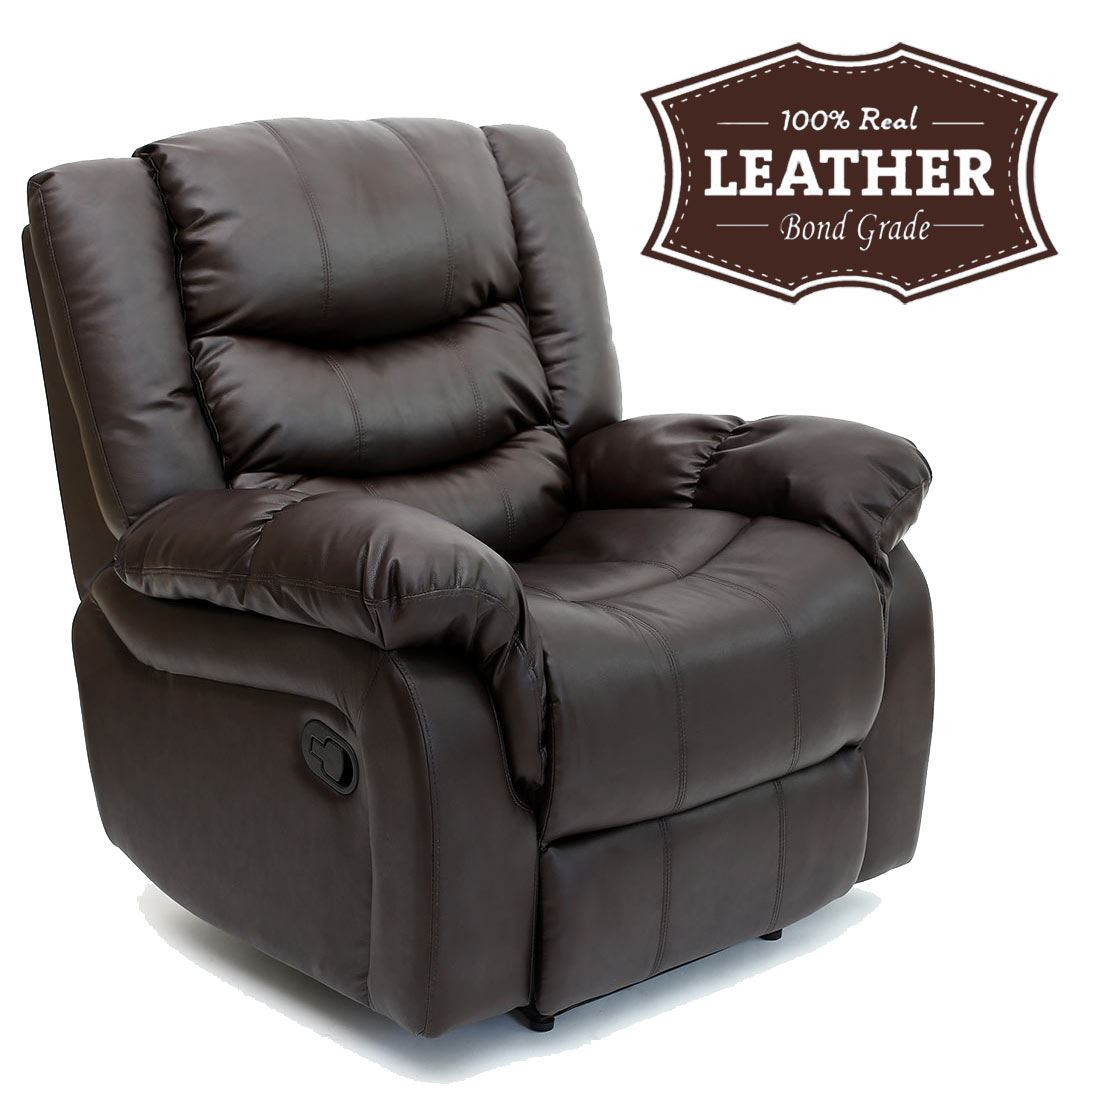 Leather Reclining Chair Seattle Leather Recliner Armchair Sofa Home Lounge Chair